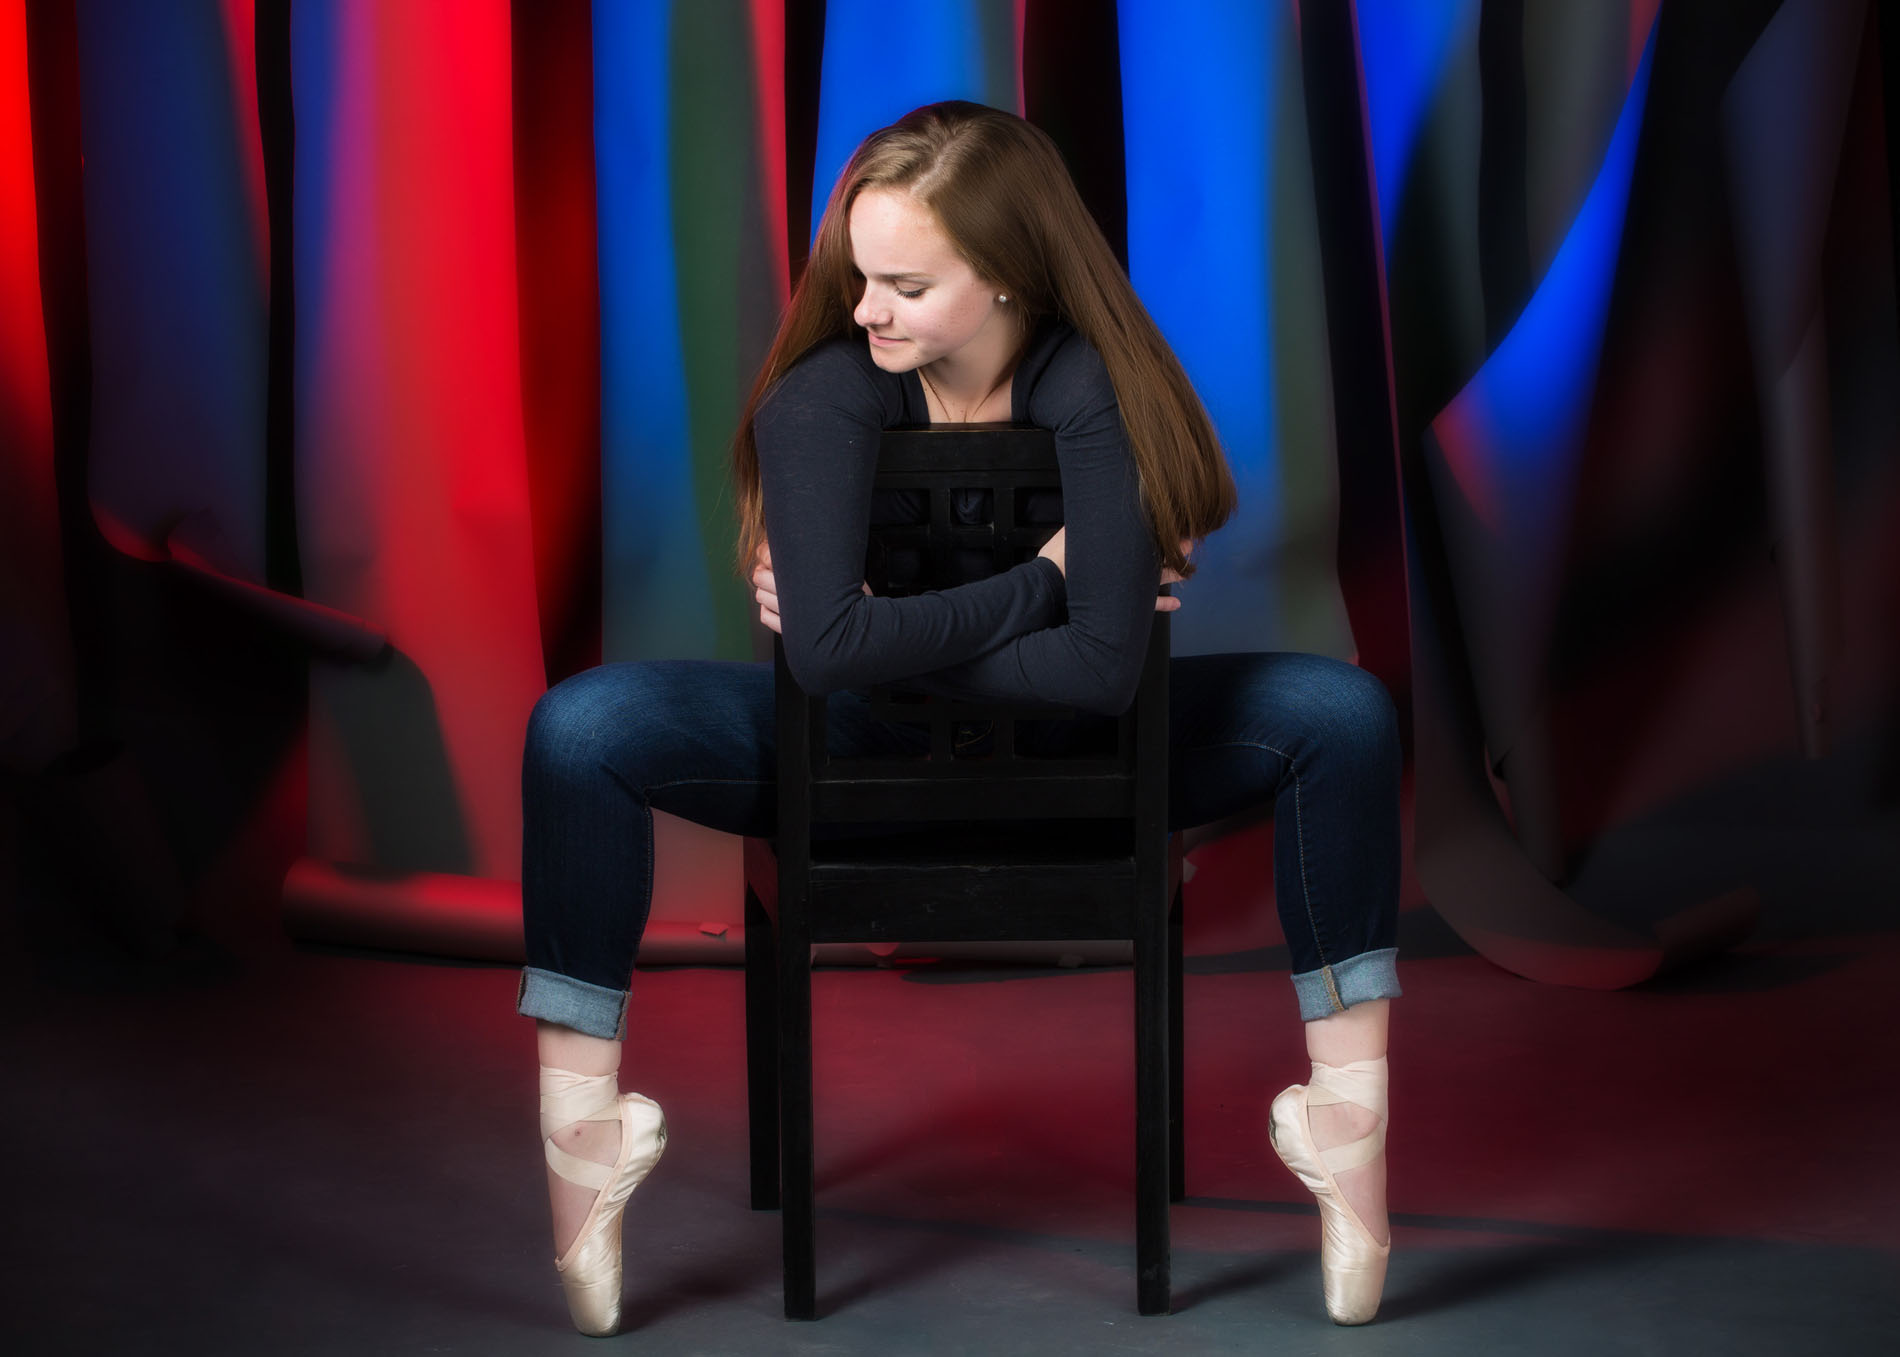 dancer wearing tap shoes photographed in studio with blue and red lights shining on background